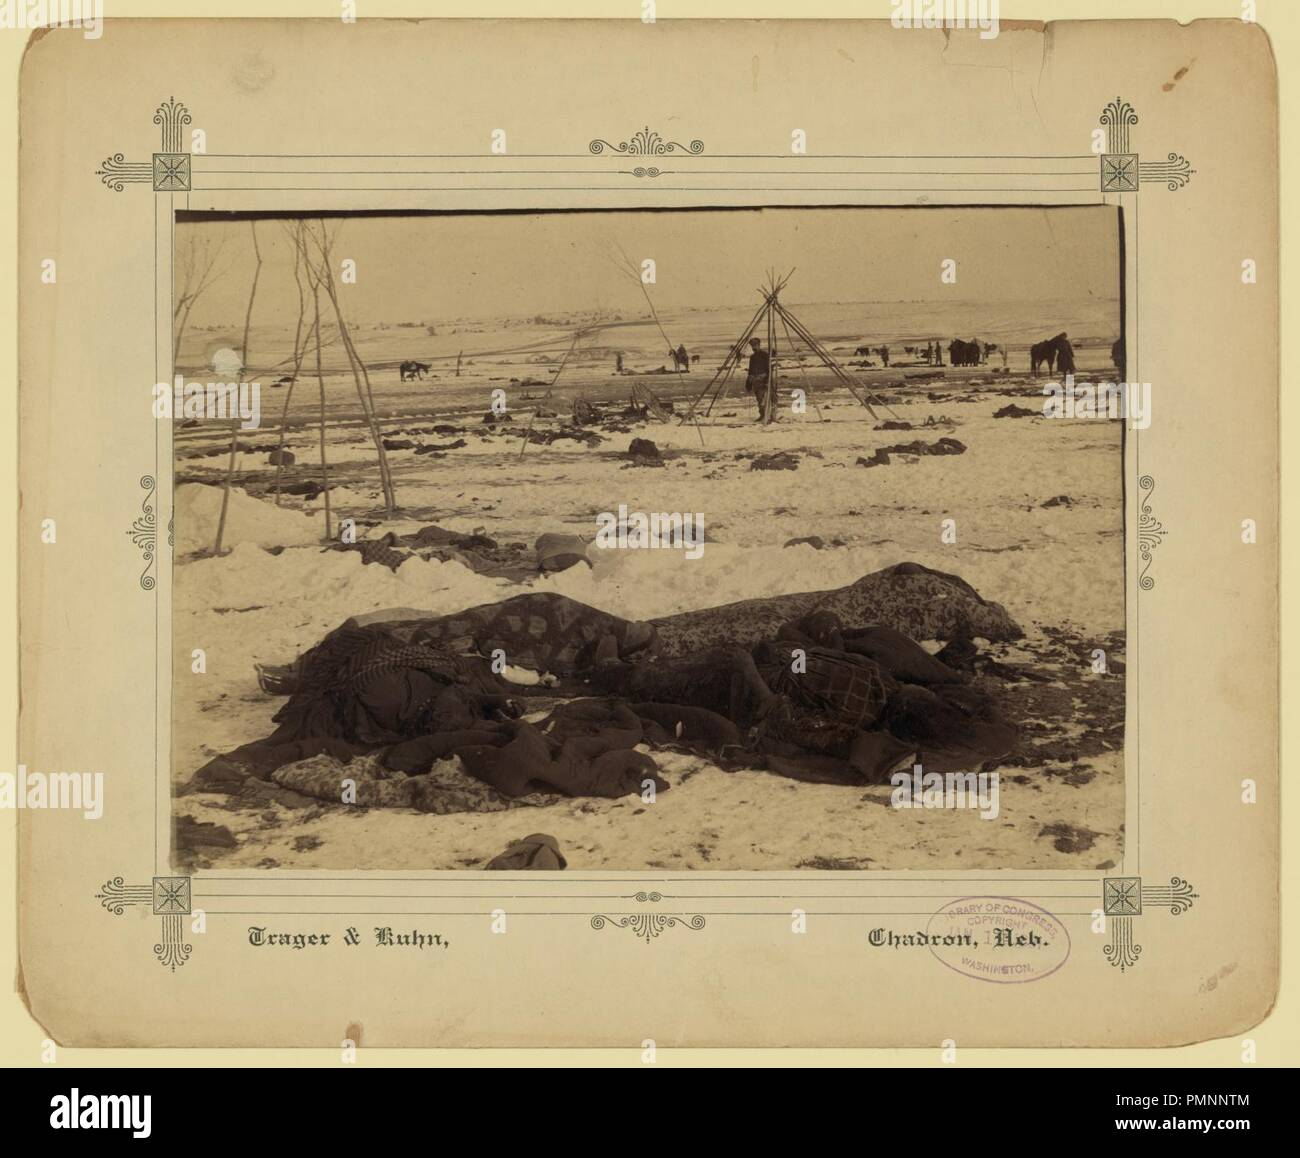 Big Foot's camp three weeks after the Wounded Knee Massacre (Dec. 29, 1890), with bodies of several Lakota Sioux people wrapped in blankets in the foreground and U.S. soldiers in the Stock Photo